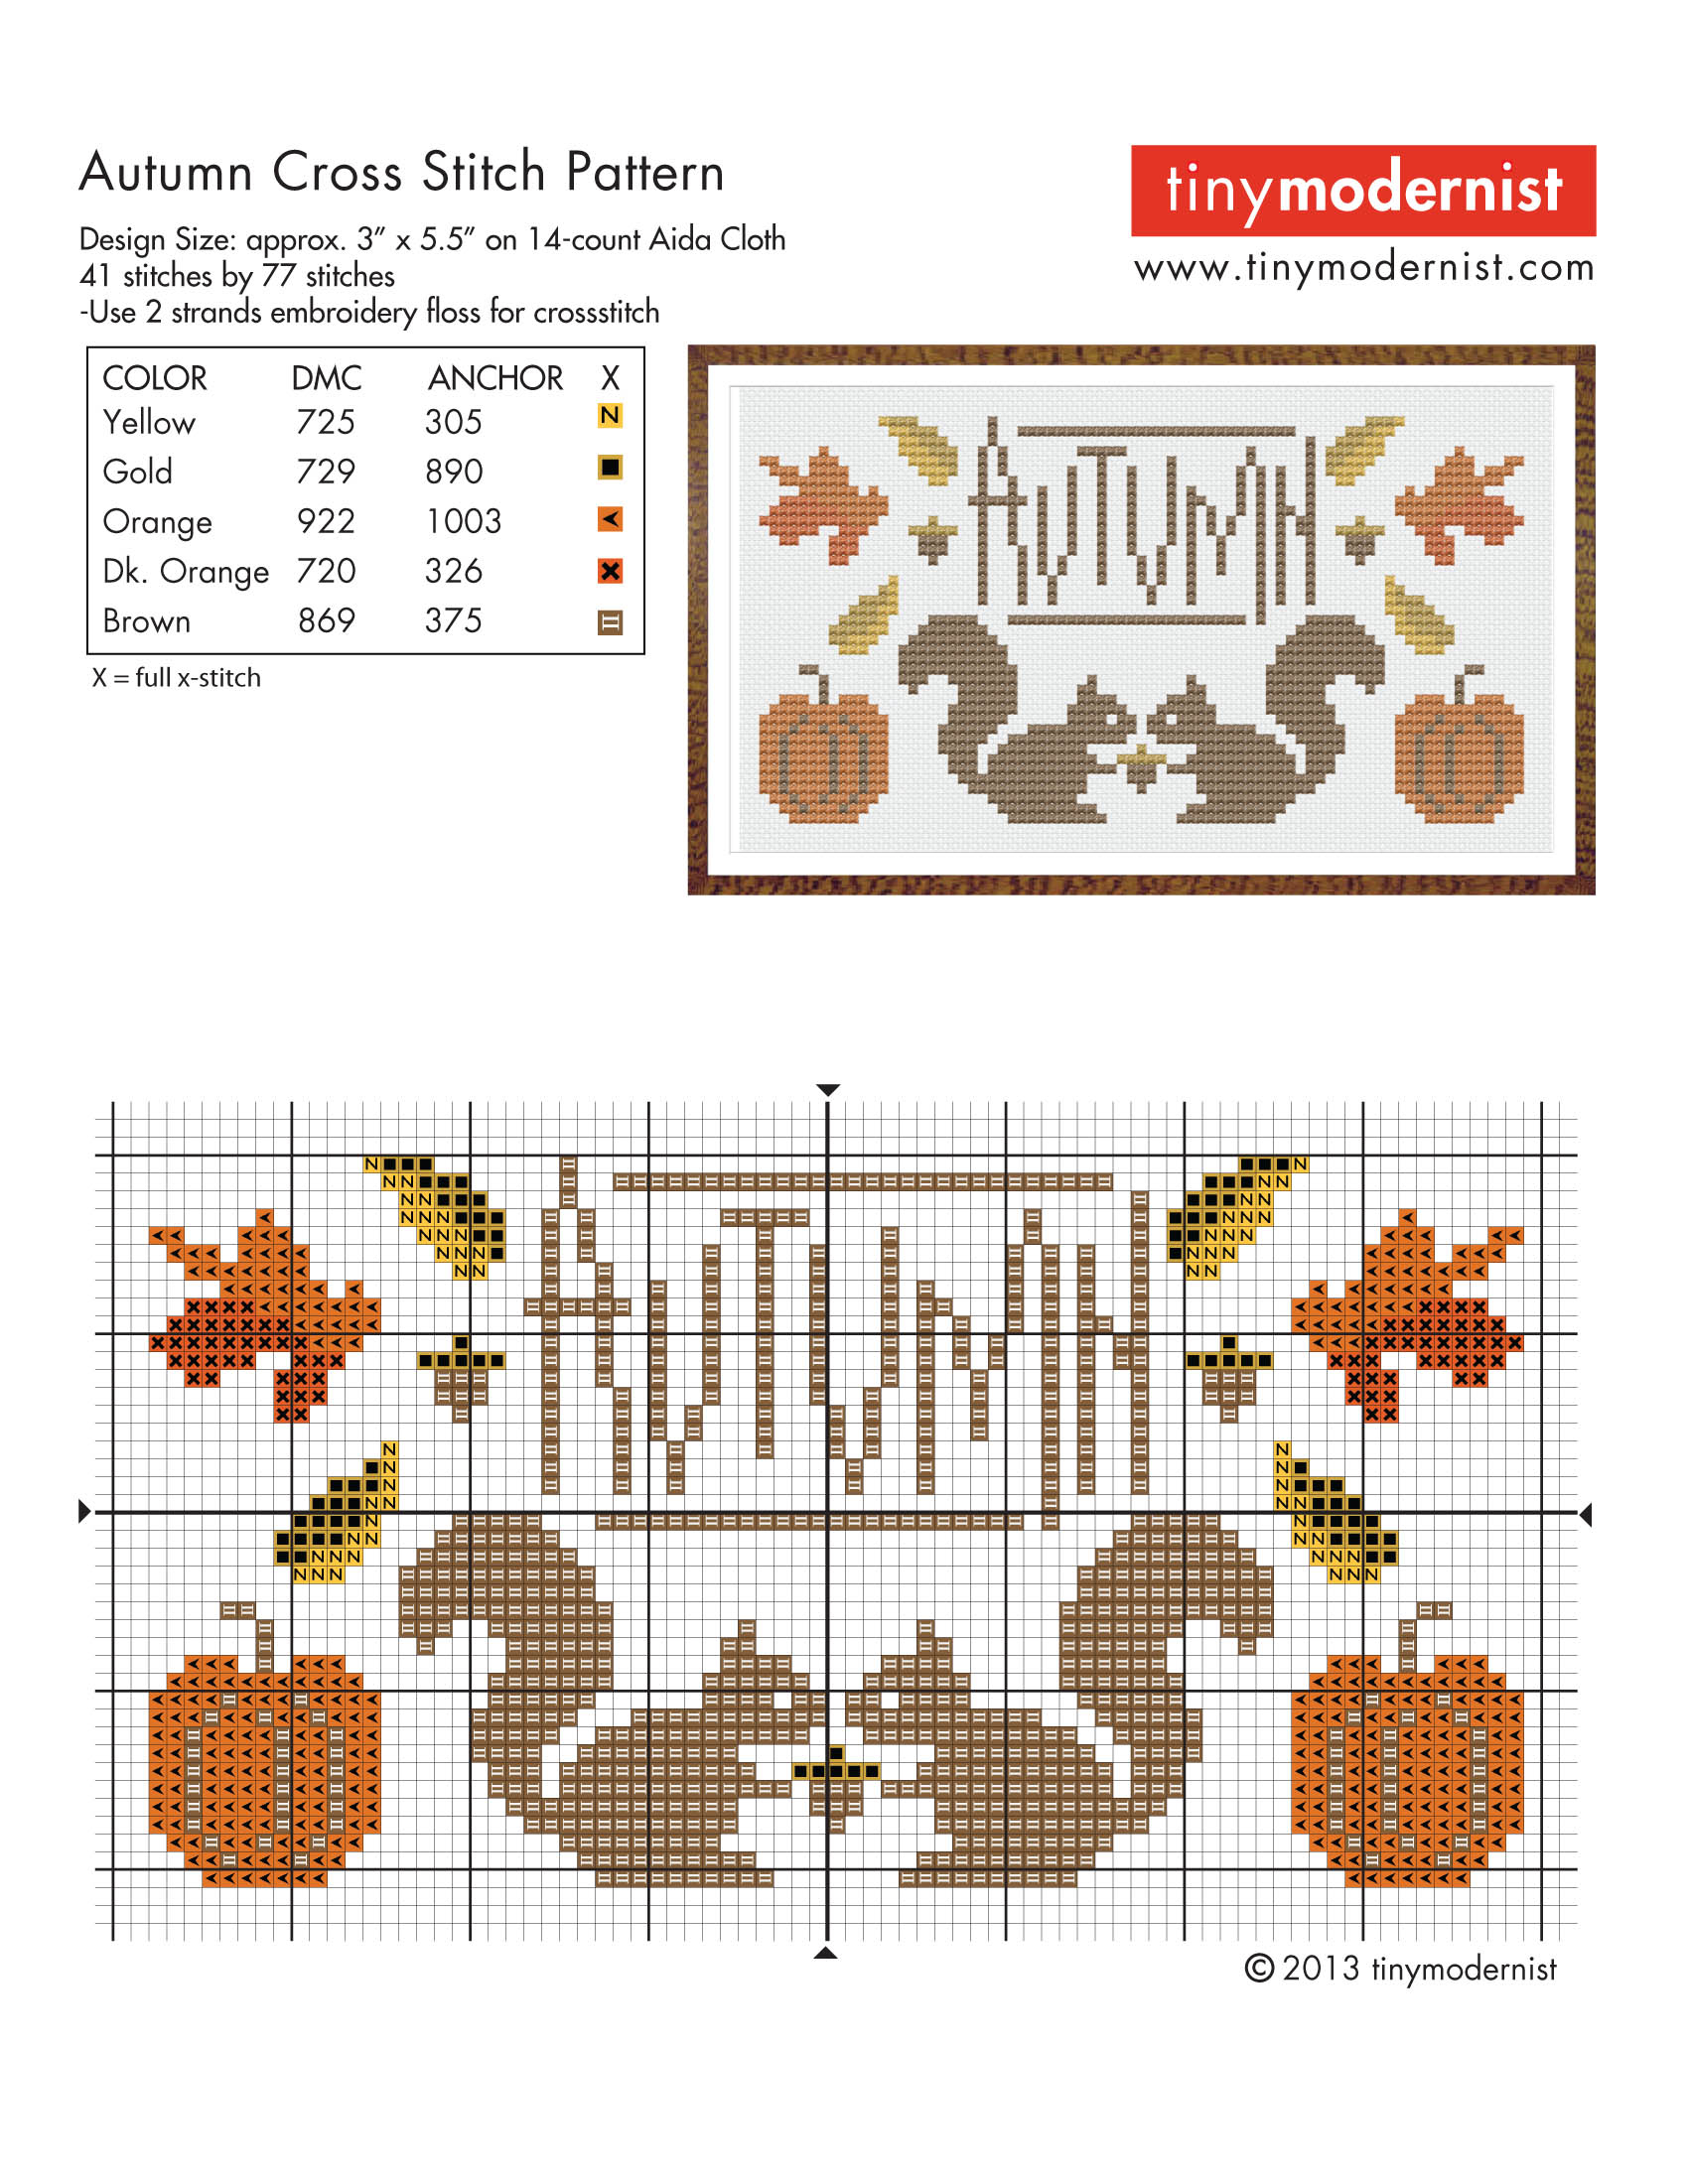 Free Cross Stitch Patterns | Tiny Modernist Cross Stitch Blog - Free Printable Modern Cross Stitch Patterns